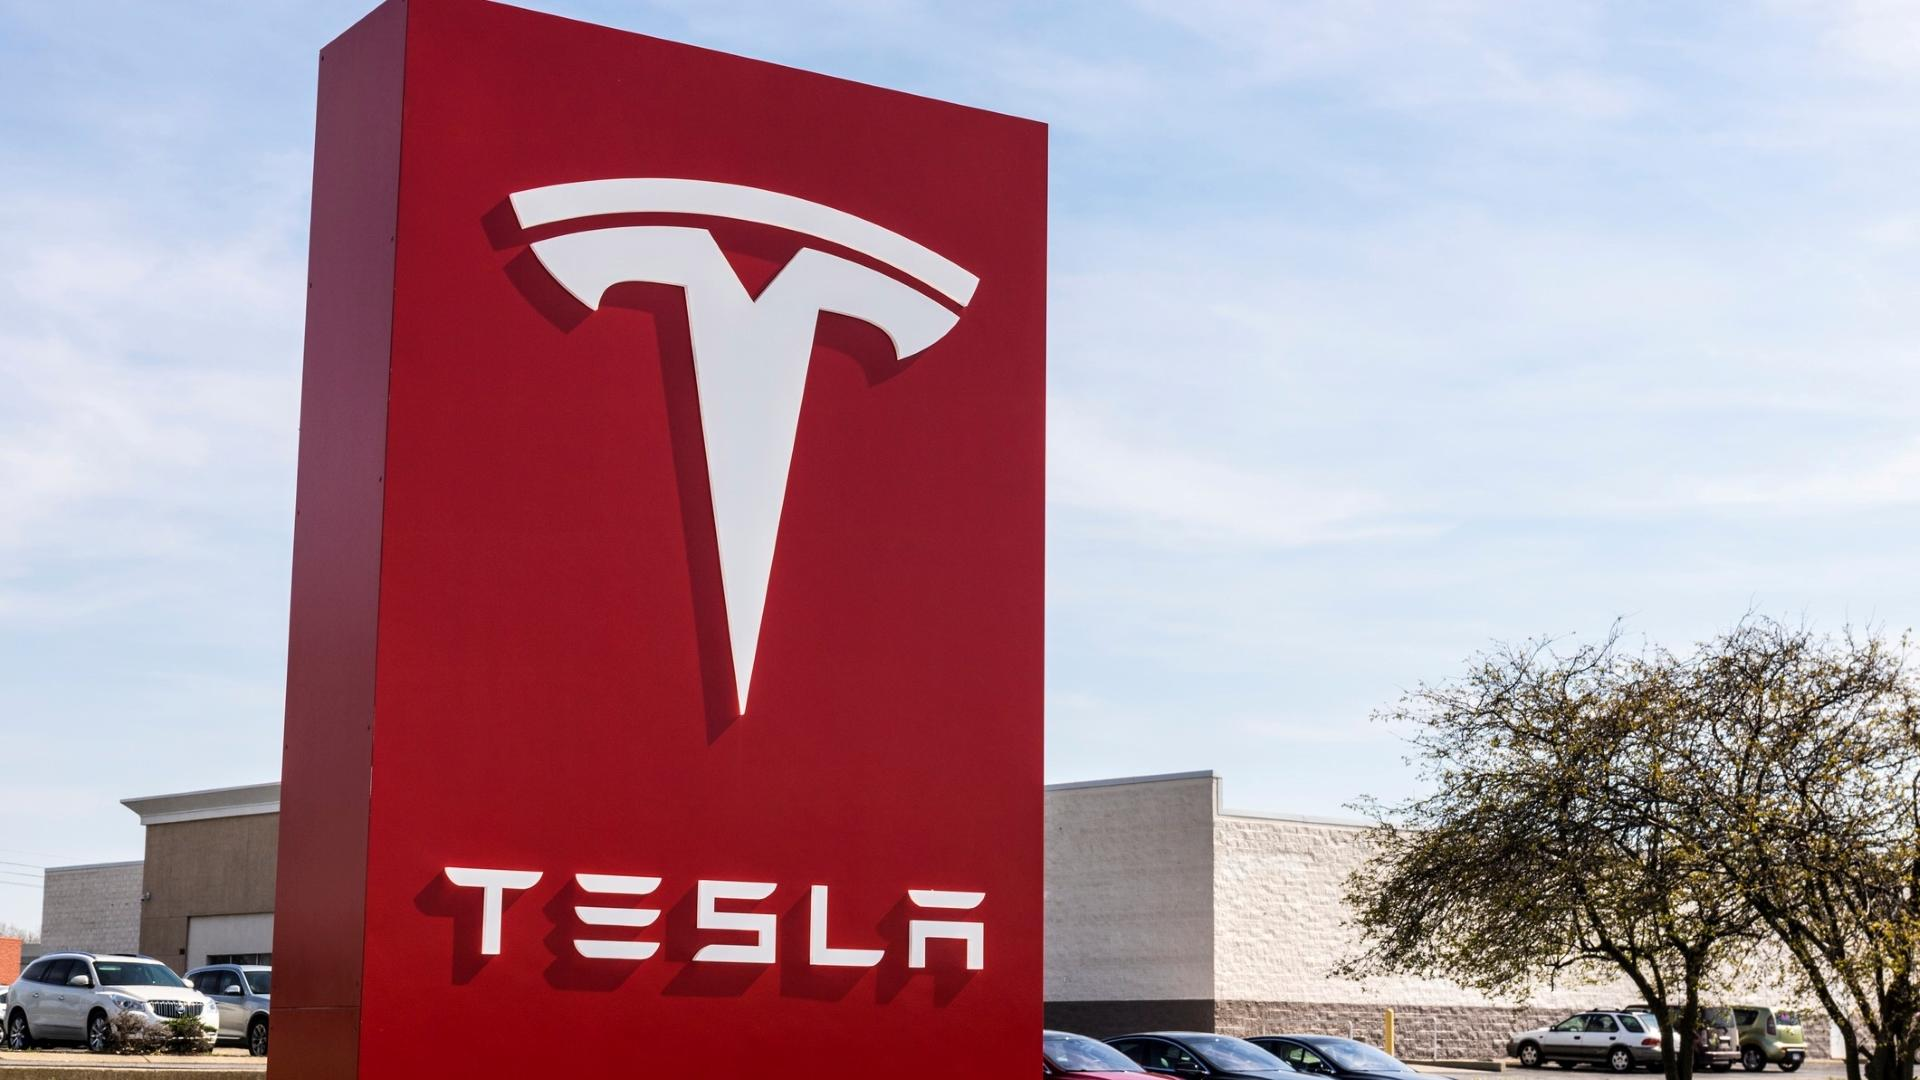 How Much Money Would You Have: Tesla Model S vs. Tesla Stock